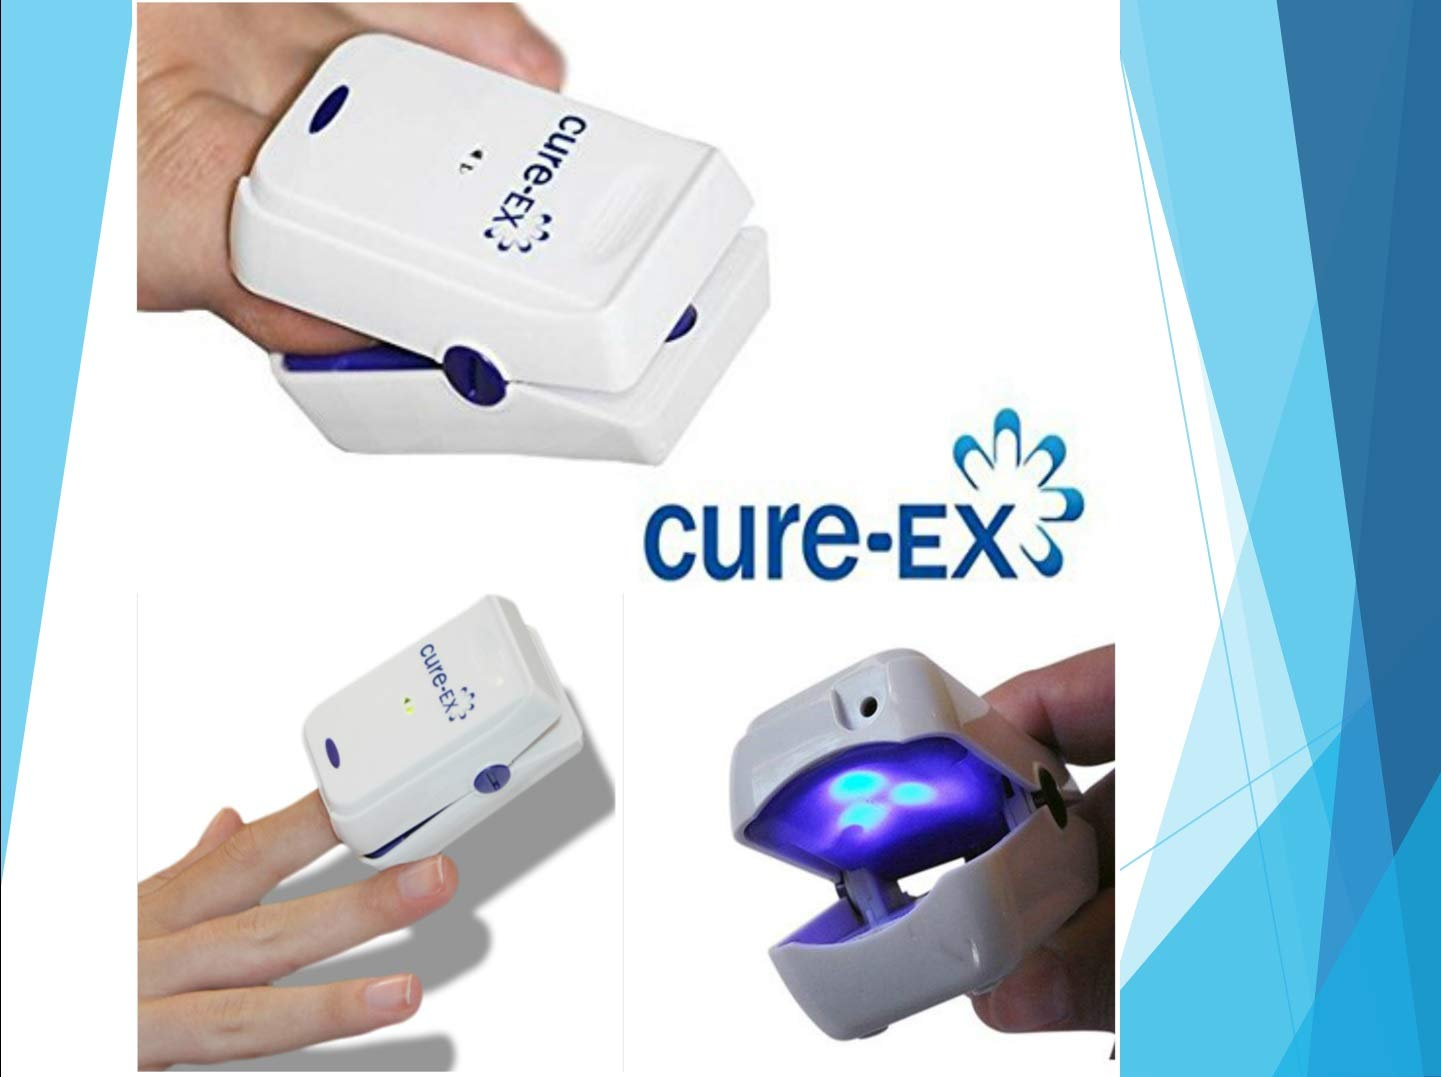 Professional Nail Fungus Treatment Laser Device - Safe Natural Antifungal Treatment for Home Use - Toenail Fungus Medication - Yellow Fungi Nail Remover - 7 Minutes a Day - Don't Be Embarrassed Again